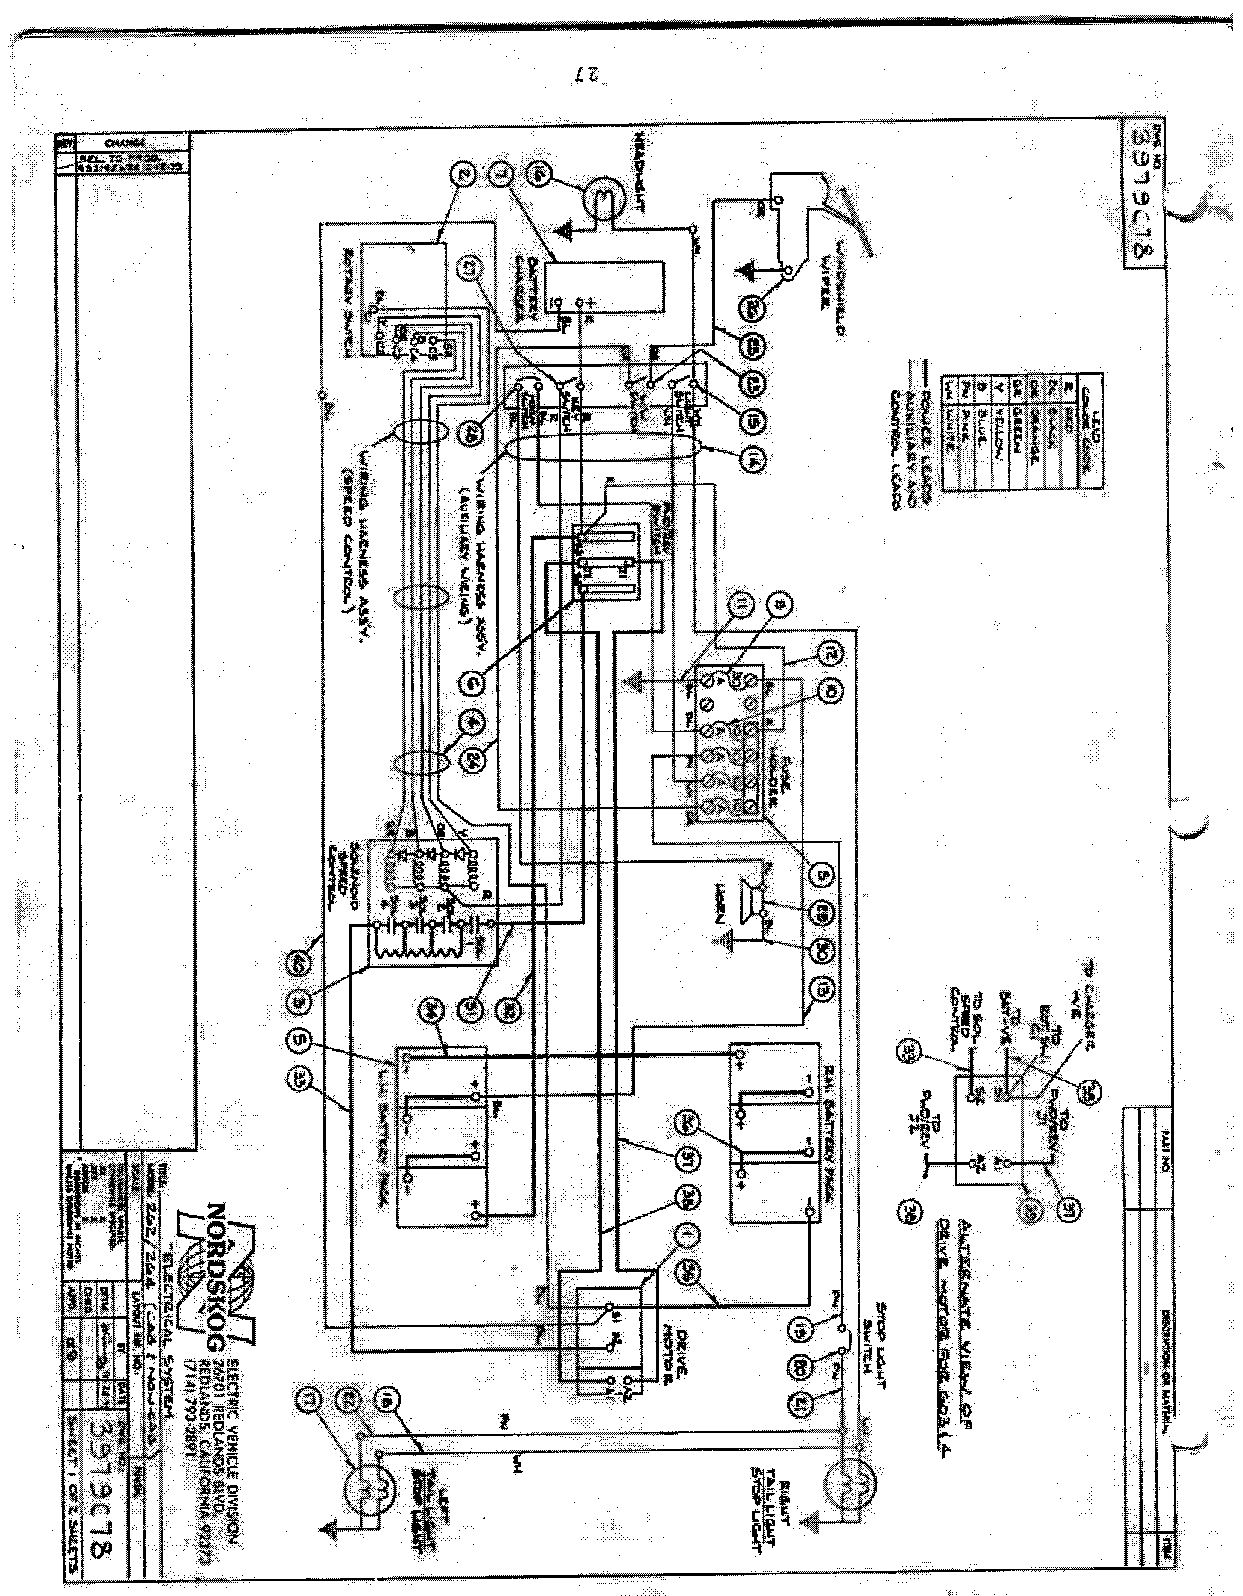 Tomberlin Golf Cart Wiring Schematic Diagram Will Be A Thing 1982 Ezgo Electric Wire Center U2022 Rh 45 77 184 10 36v